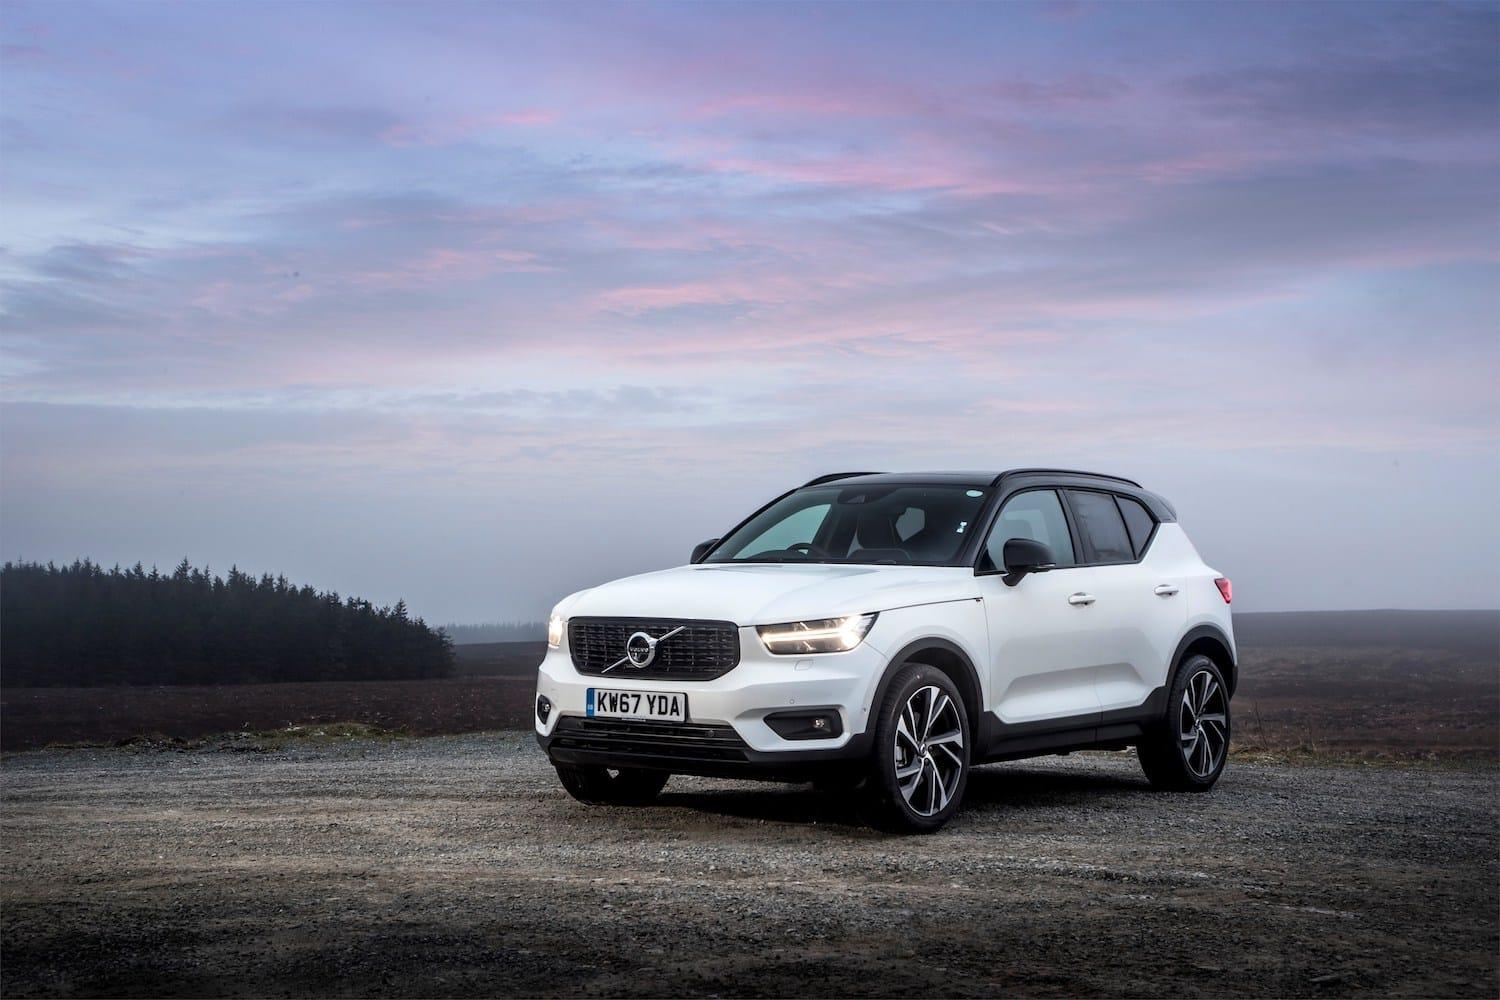 Volvo XC40 (2018) front view | The Car Expert